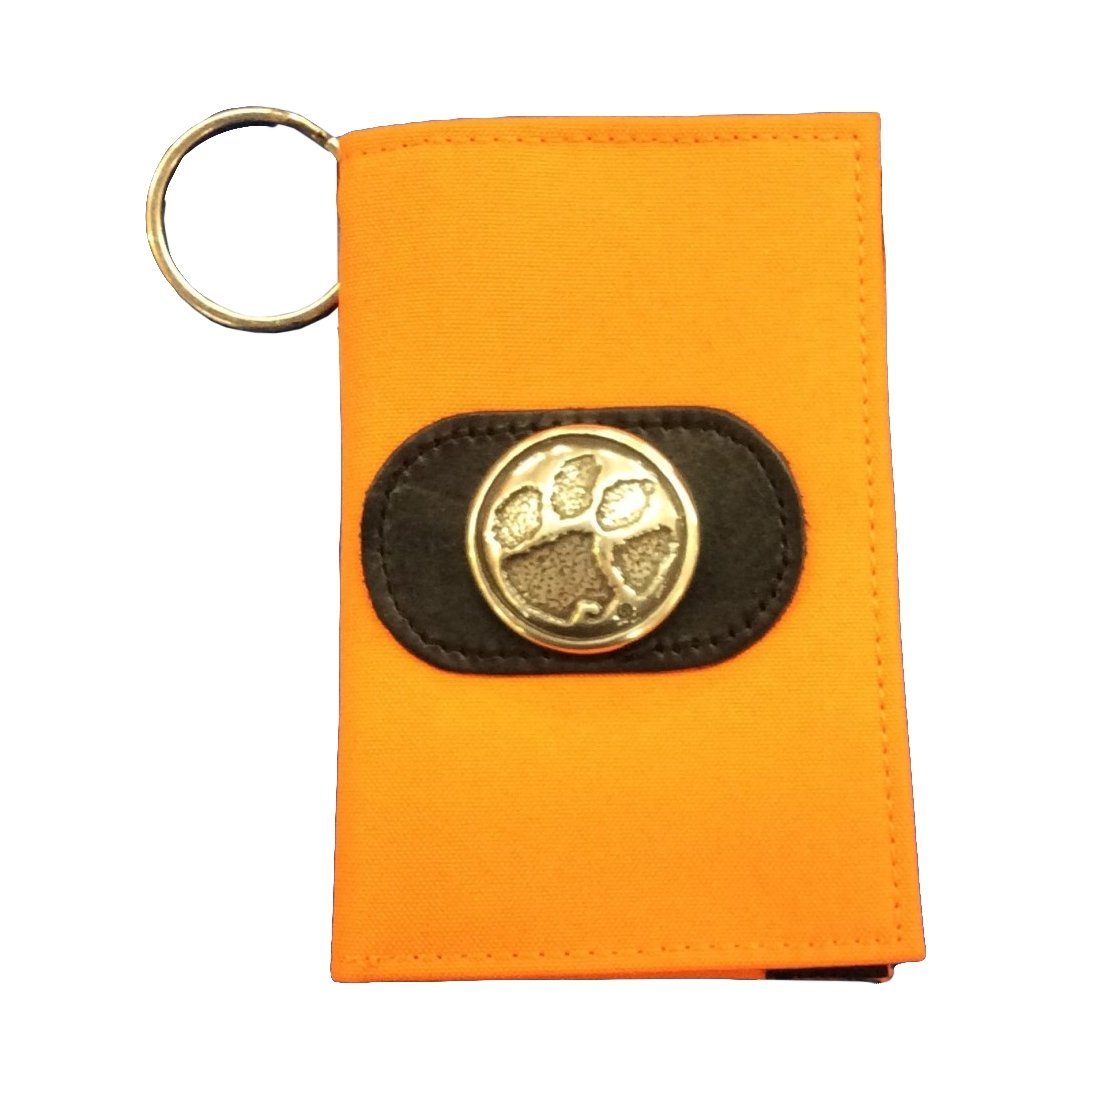 Id Holder/Key Ring - Orange Nylon With Gold Paw Concho - Mr. Knickerbocker